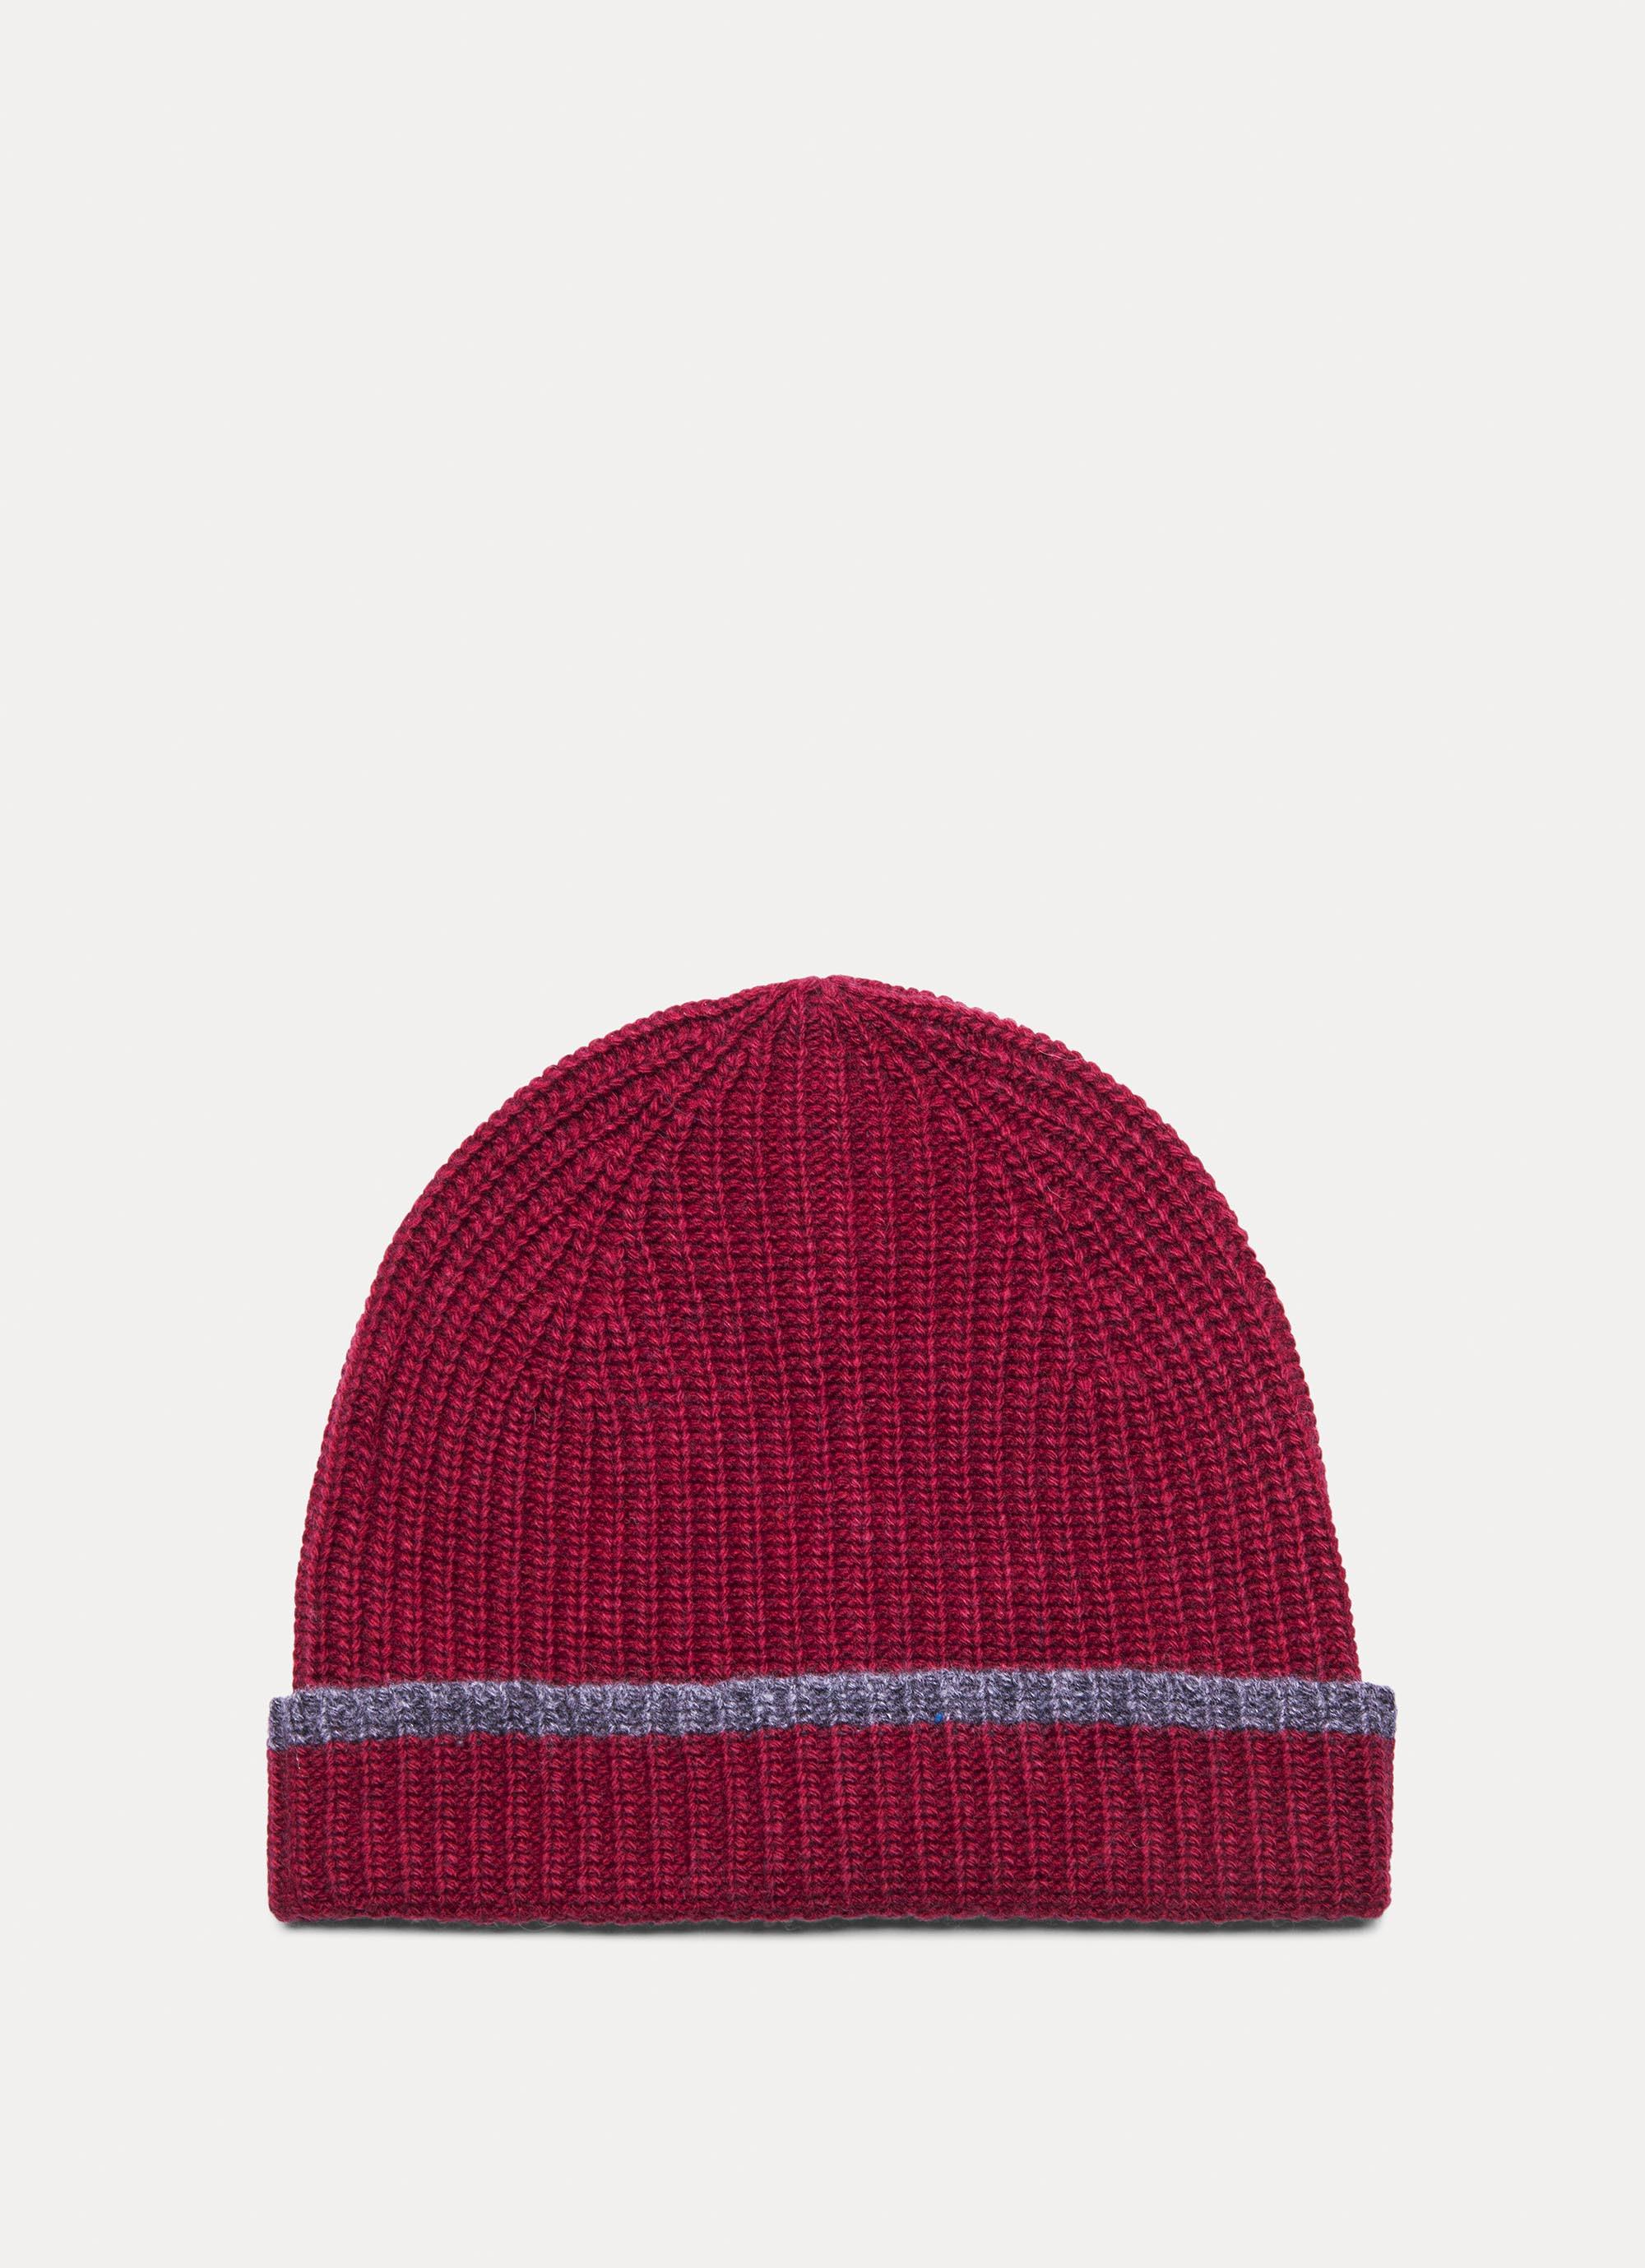 f01a4b5cf93 Hackett Ribbed Wool And Cashmere Blend Beanie Hat in Red for Men - Lyst